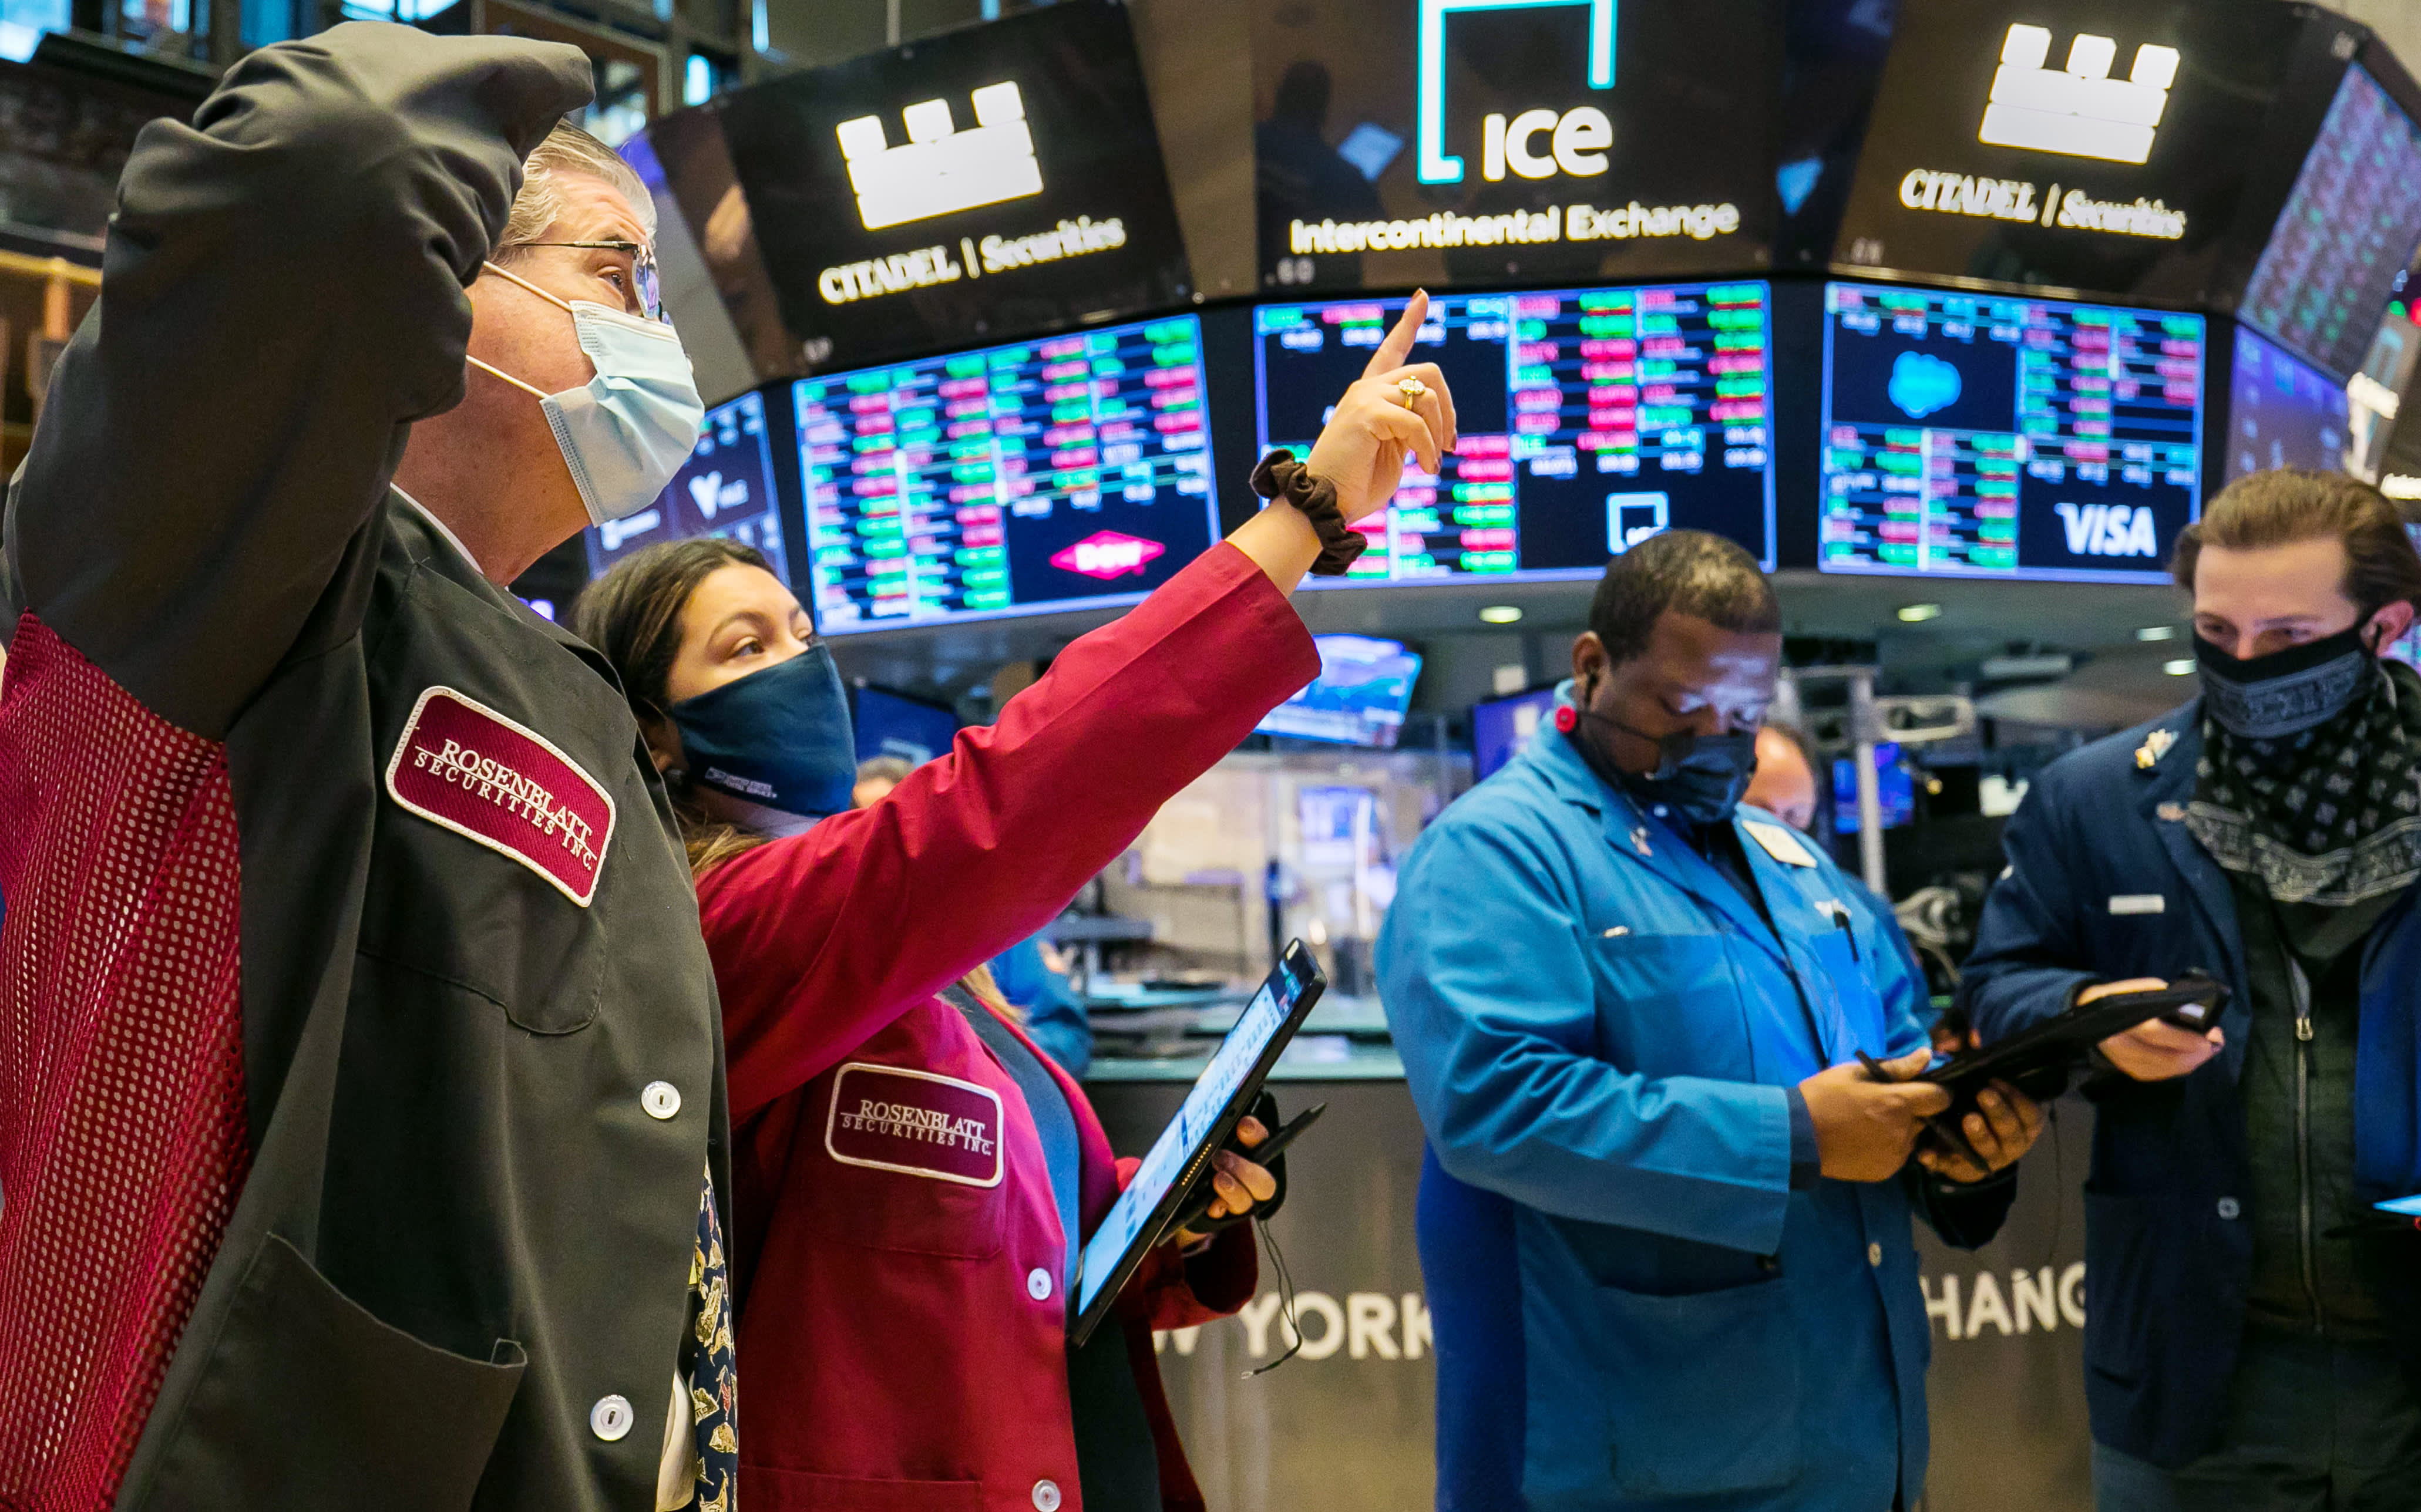 S&P 500 jumps 1% to a record high, posts its fourth positive day in a row